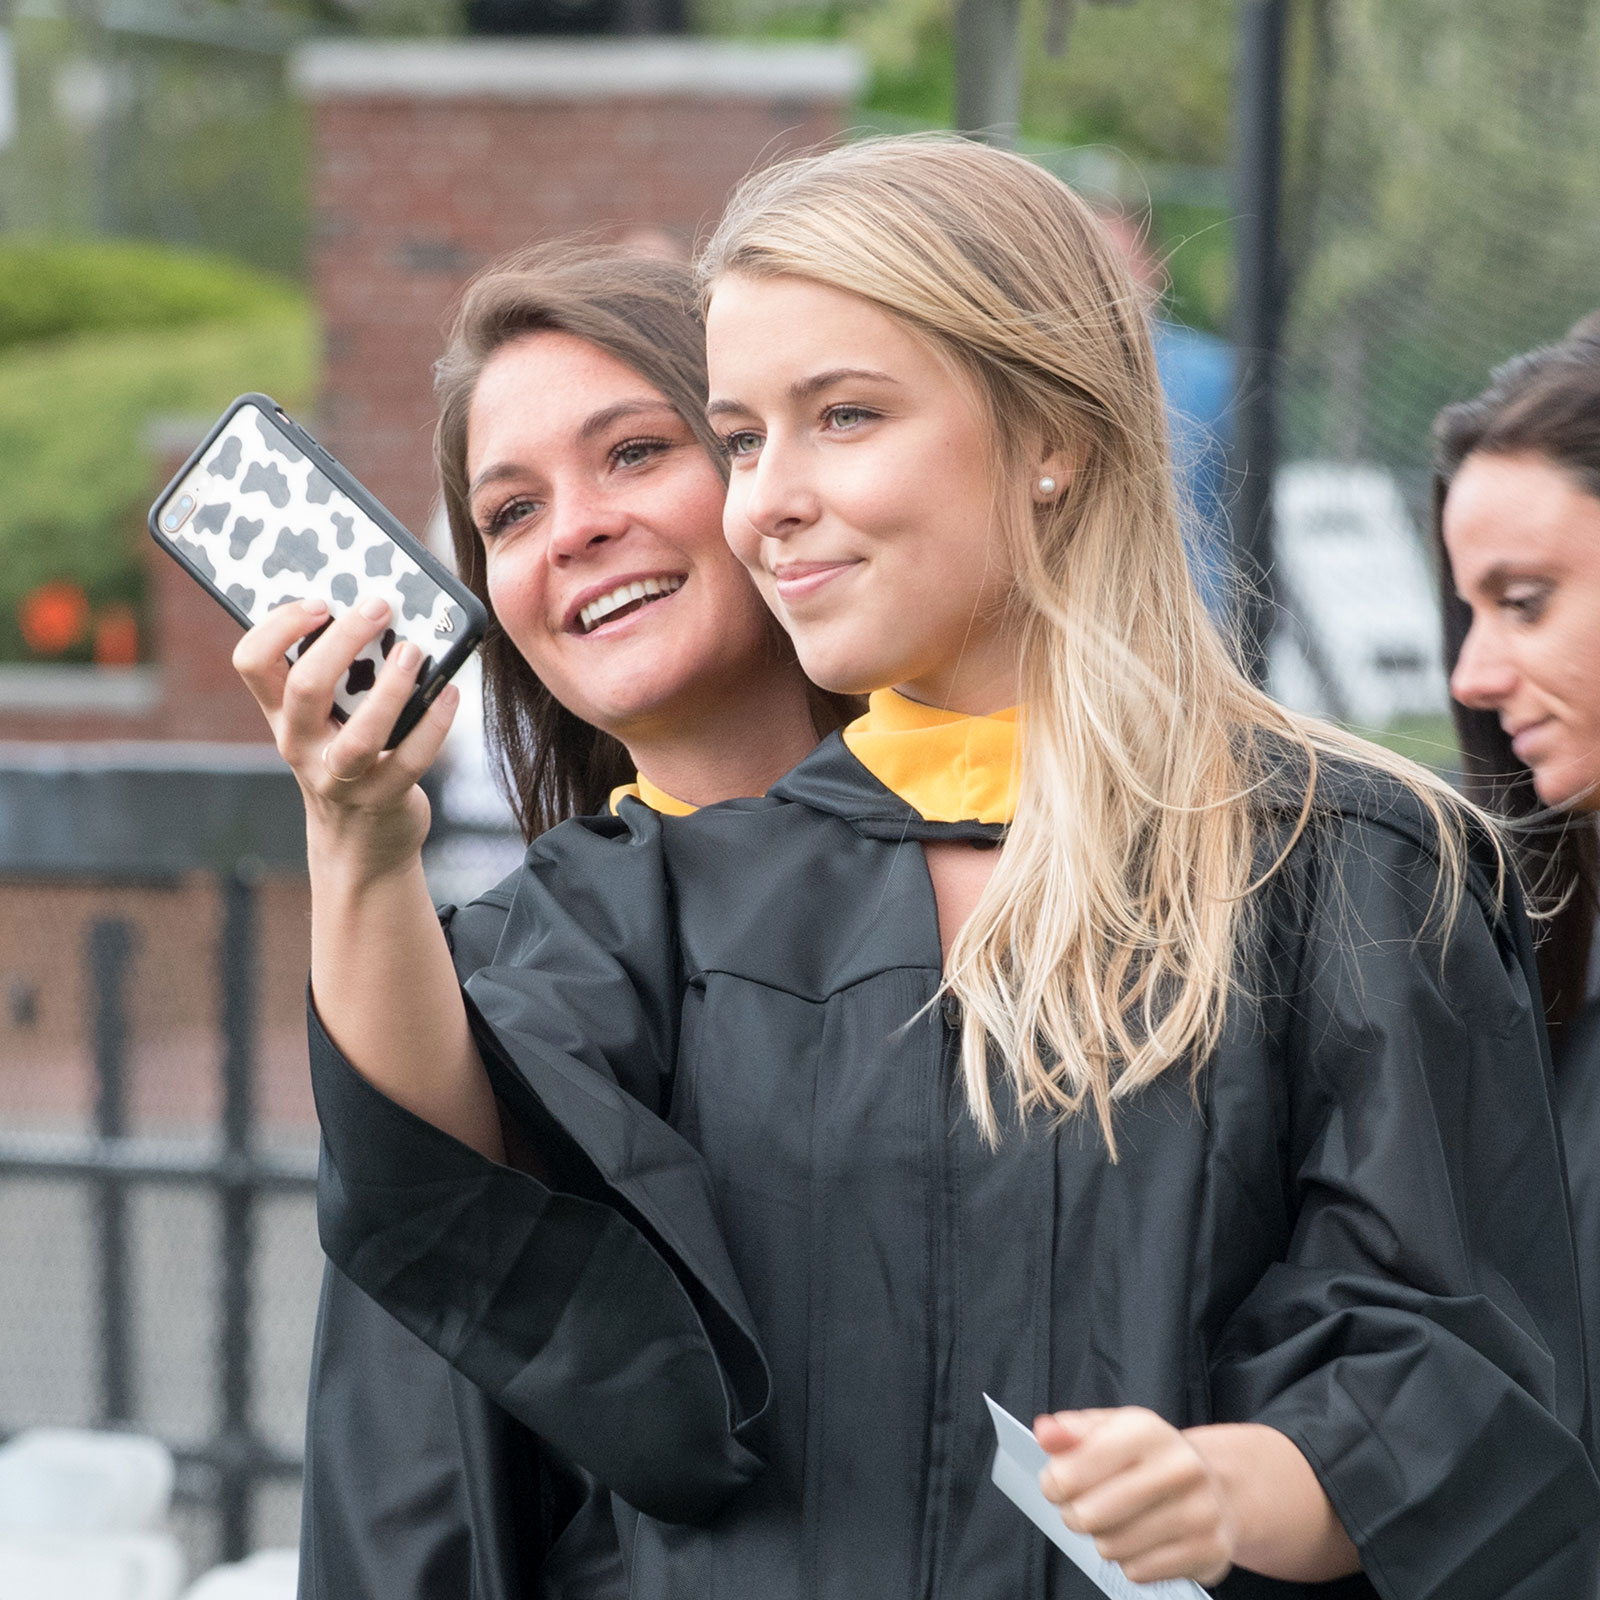 Nursing students taking a selfie